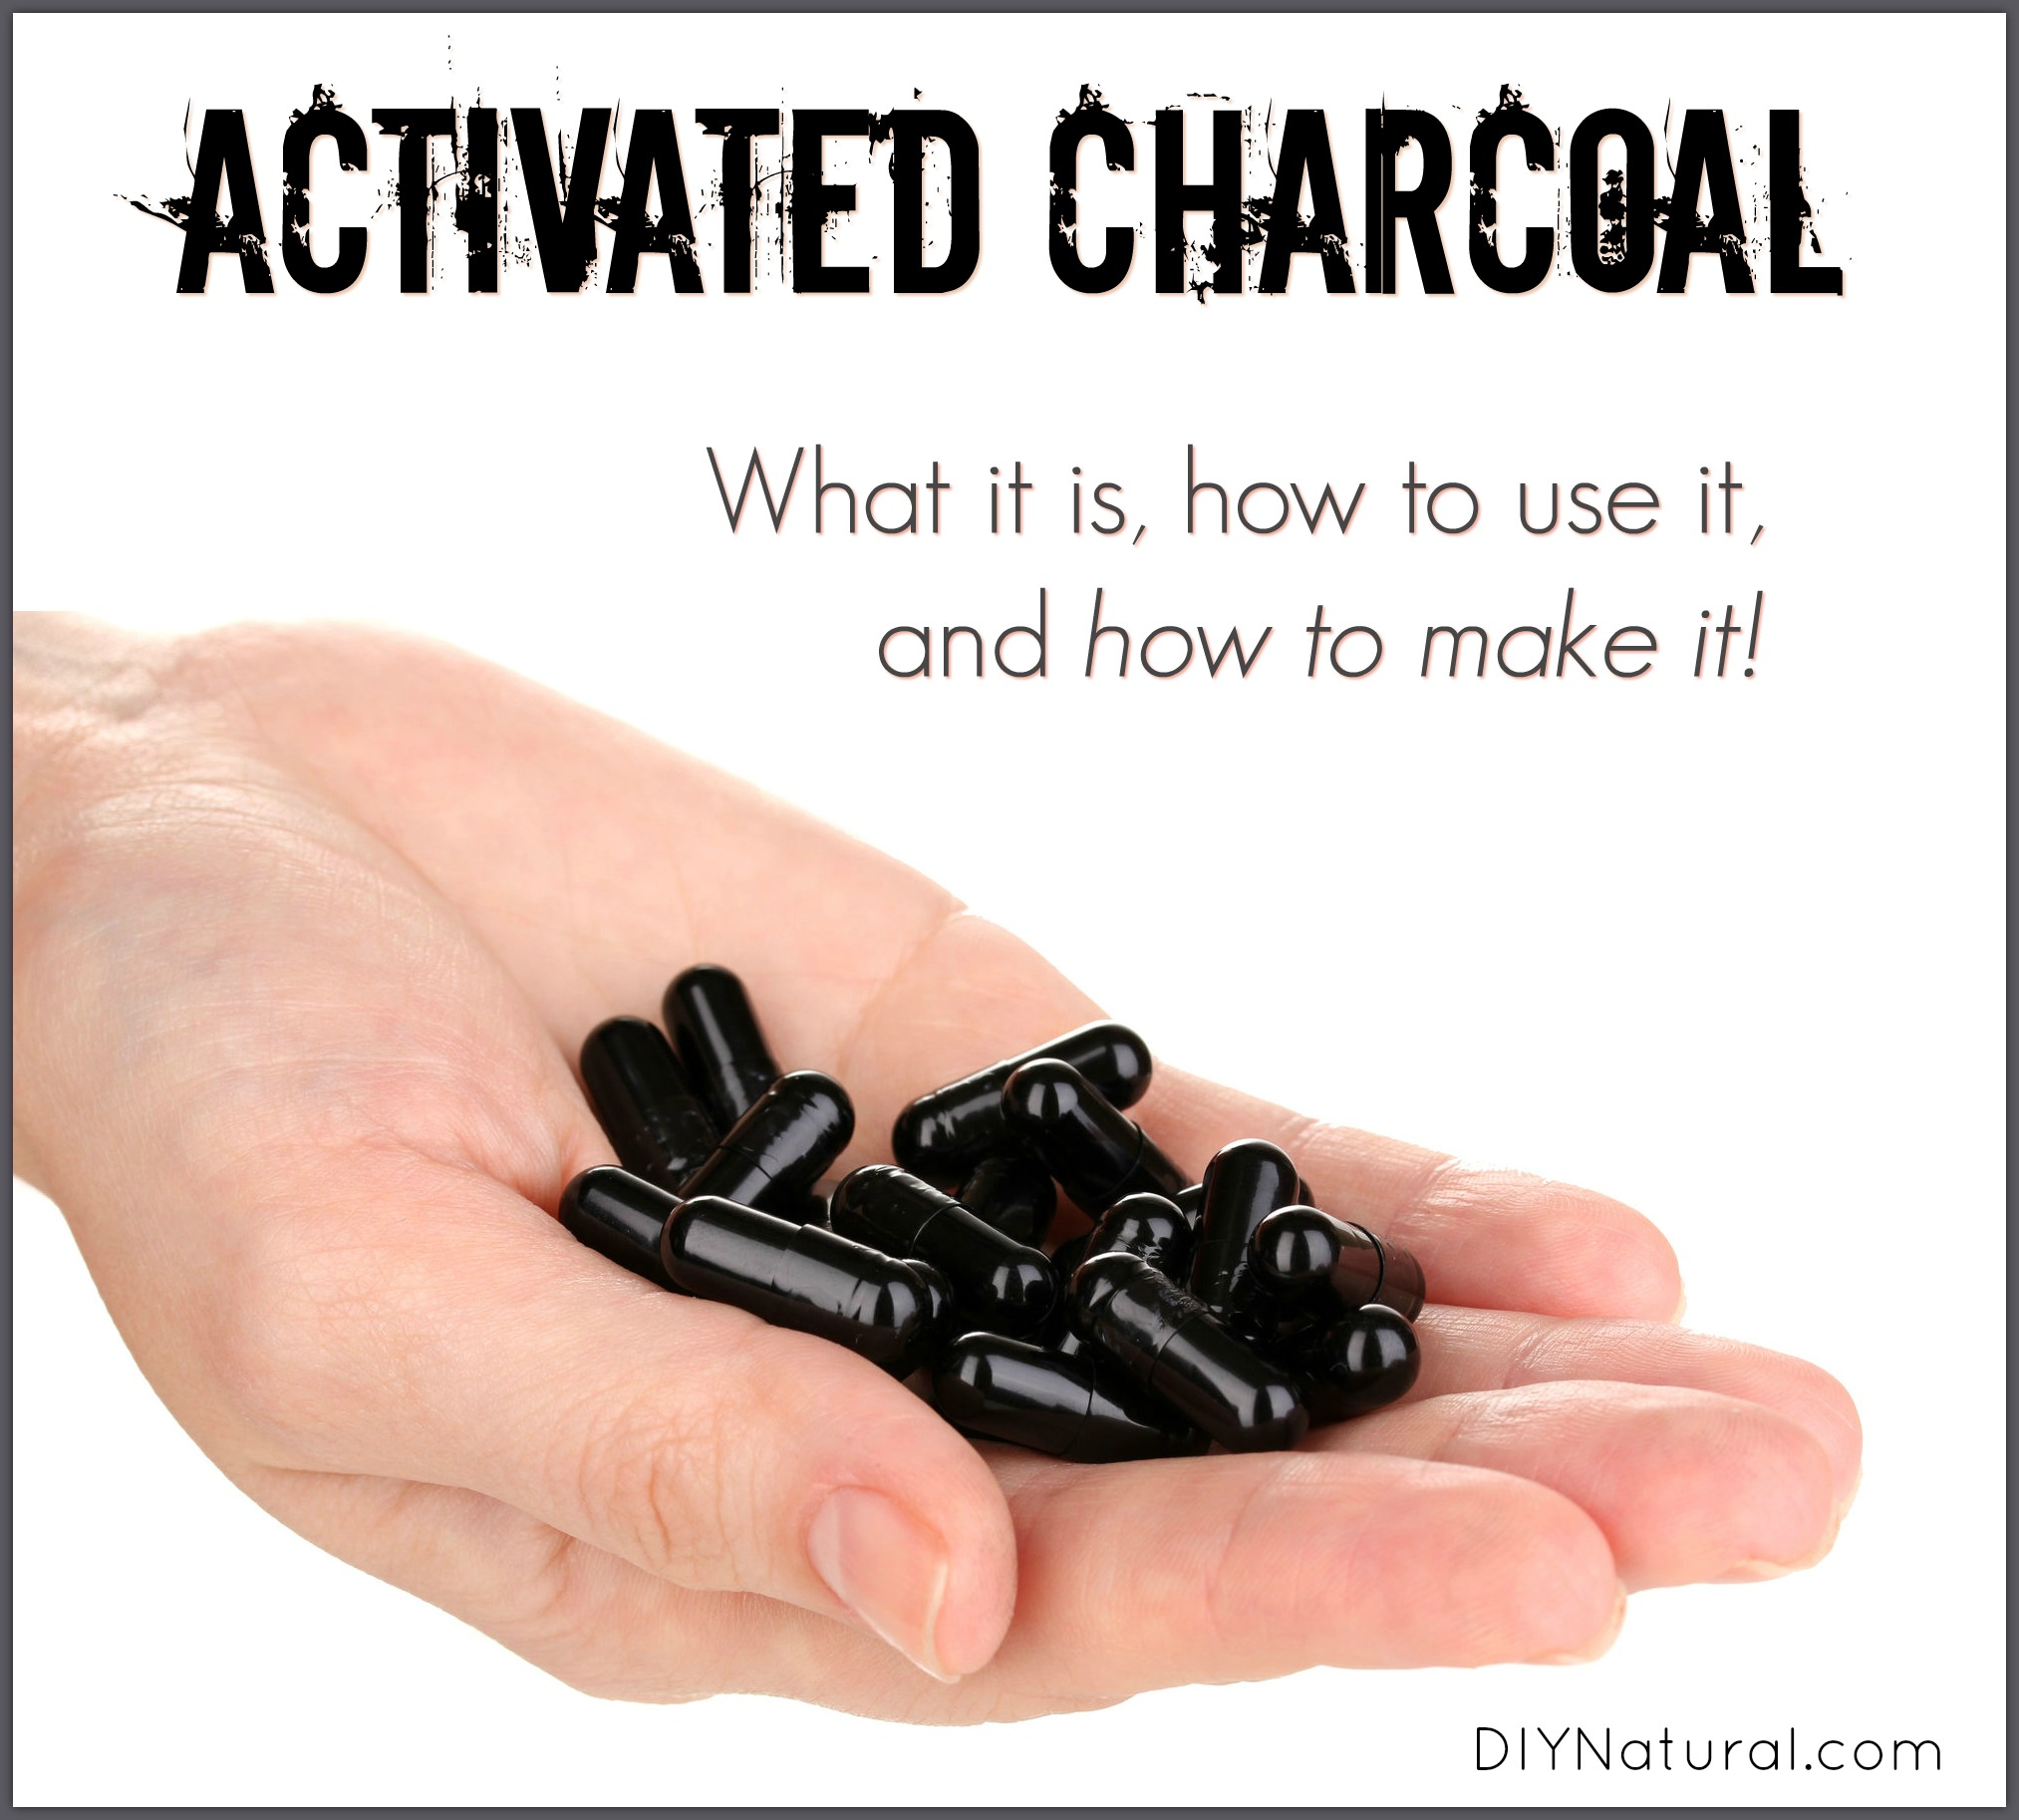 Activated Charcoal Uses: What Is It and How Is It Useful?